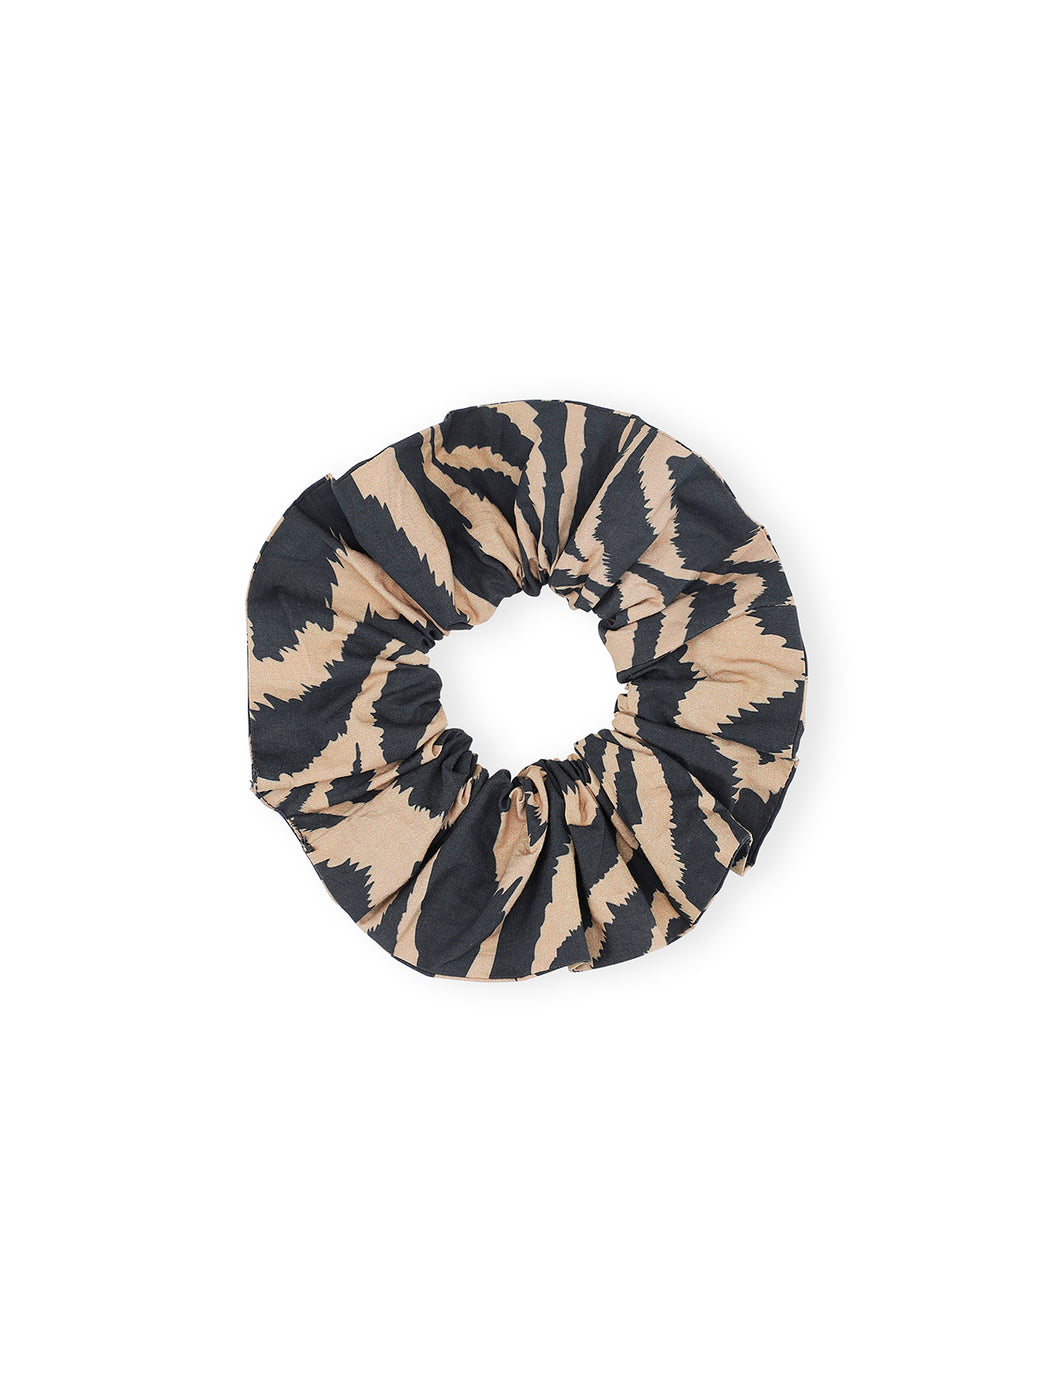 Printed Cotton Poplin Scrunchie